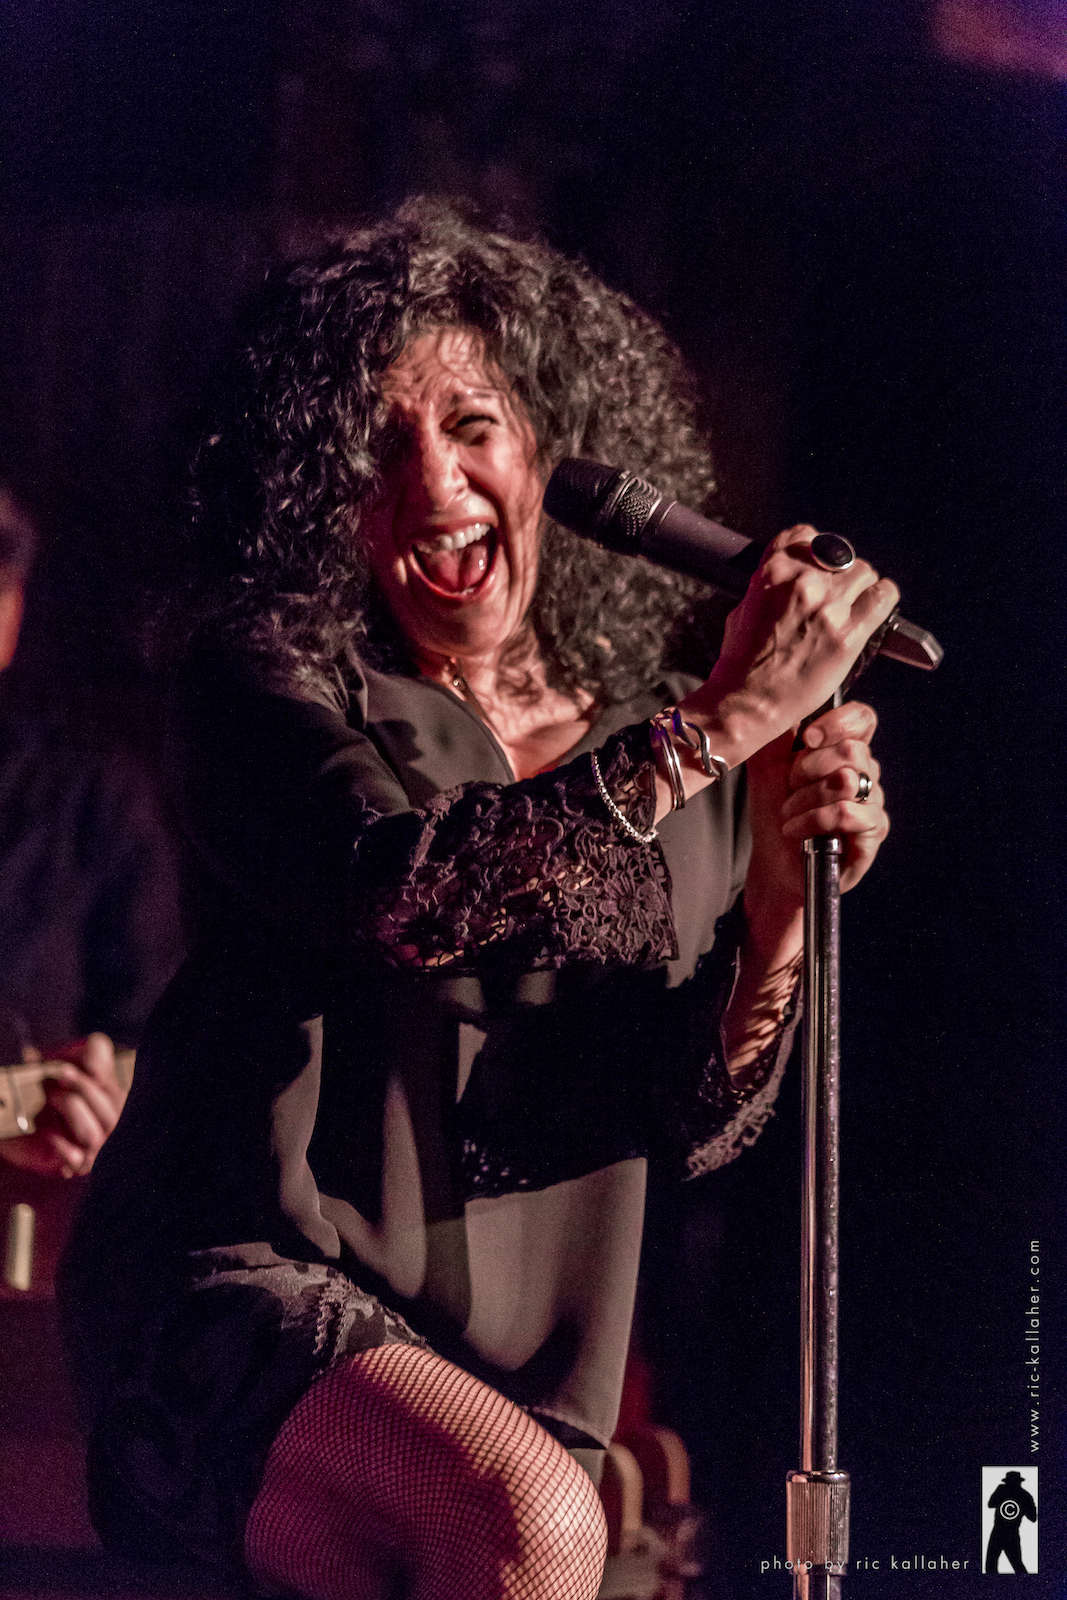 Martee LeBow rocks the house at The Cutting Room in New York City